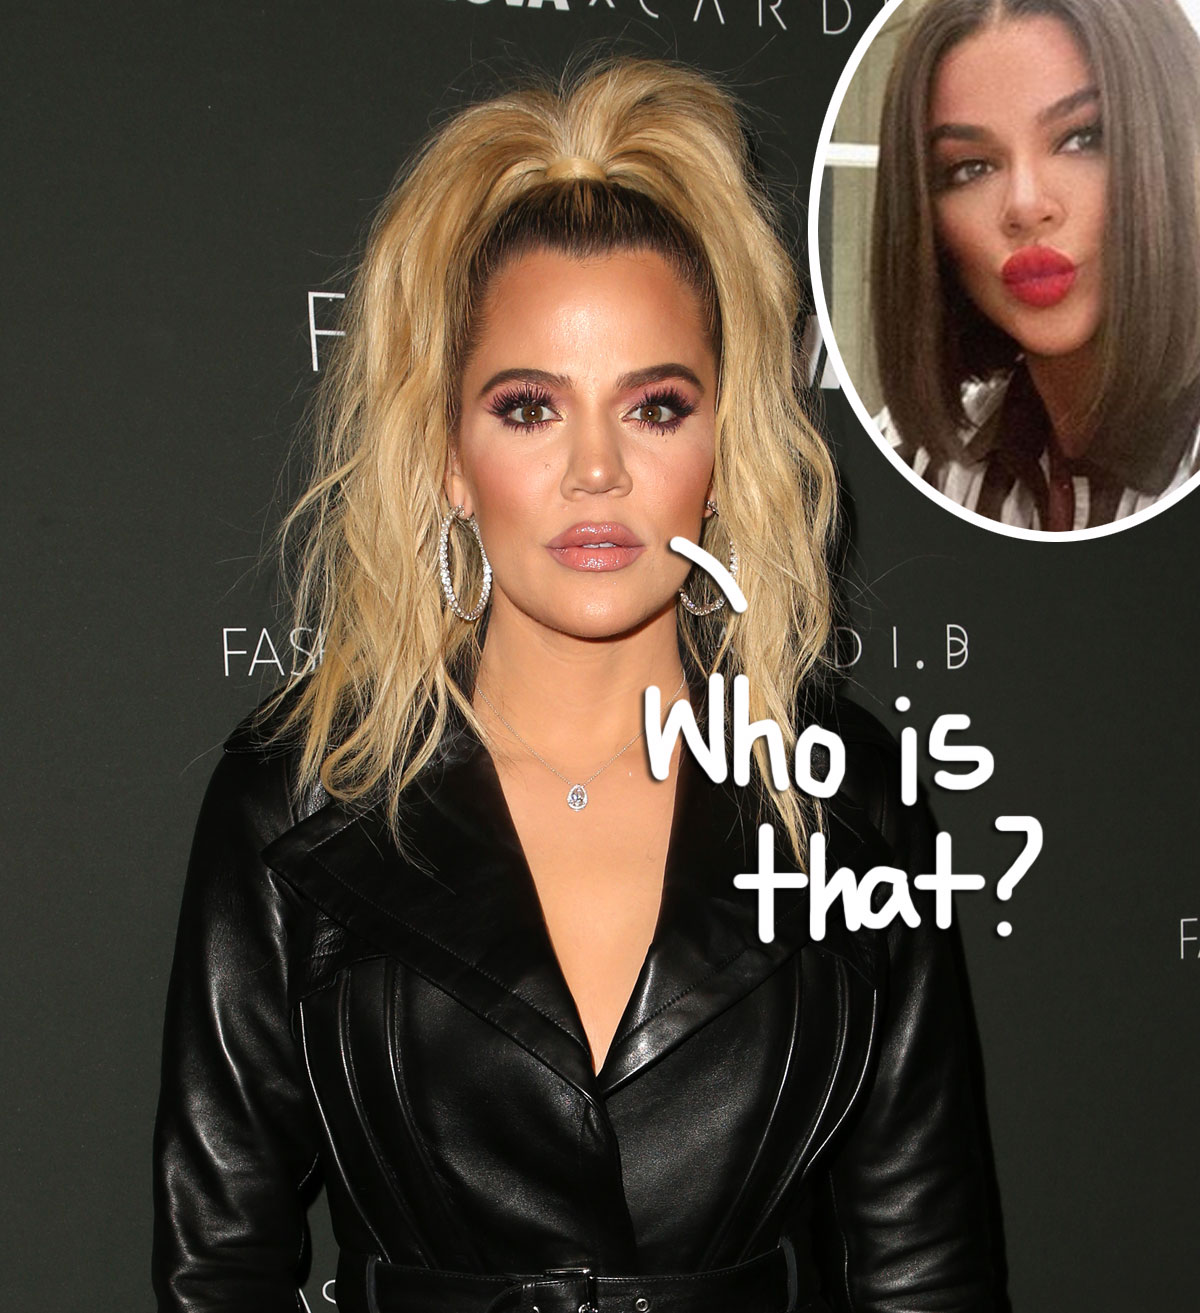 Khloe Kardashian poses with daughter True, 2, in cute photo